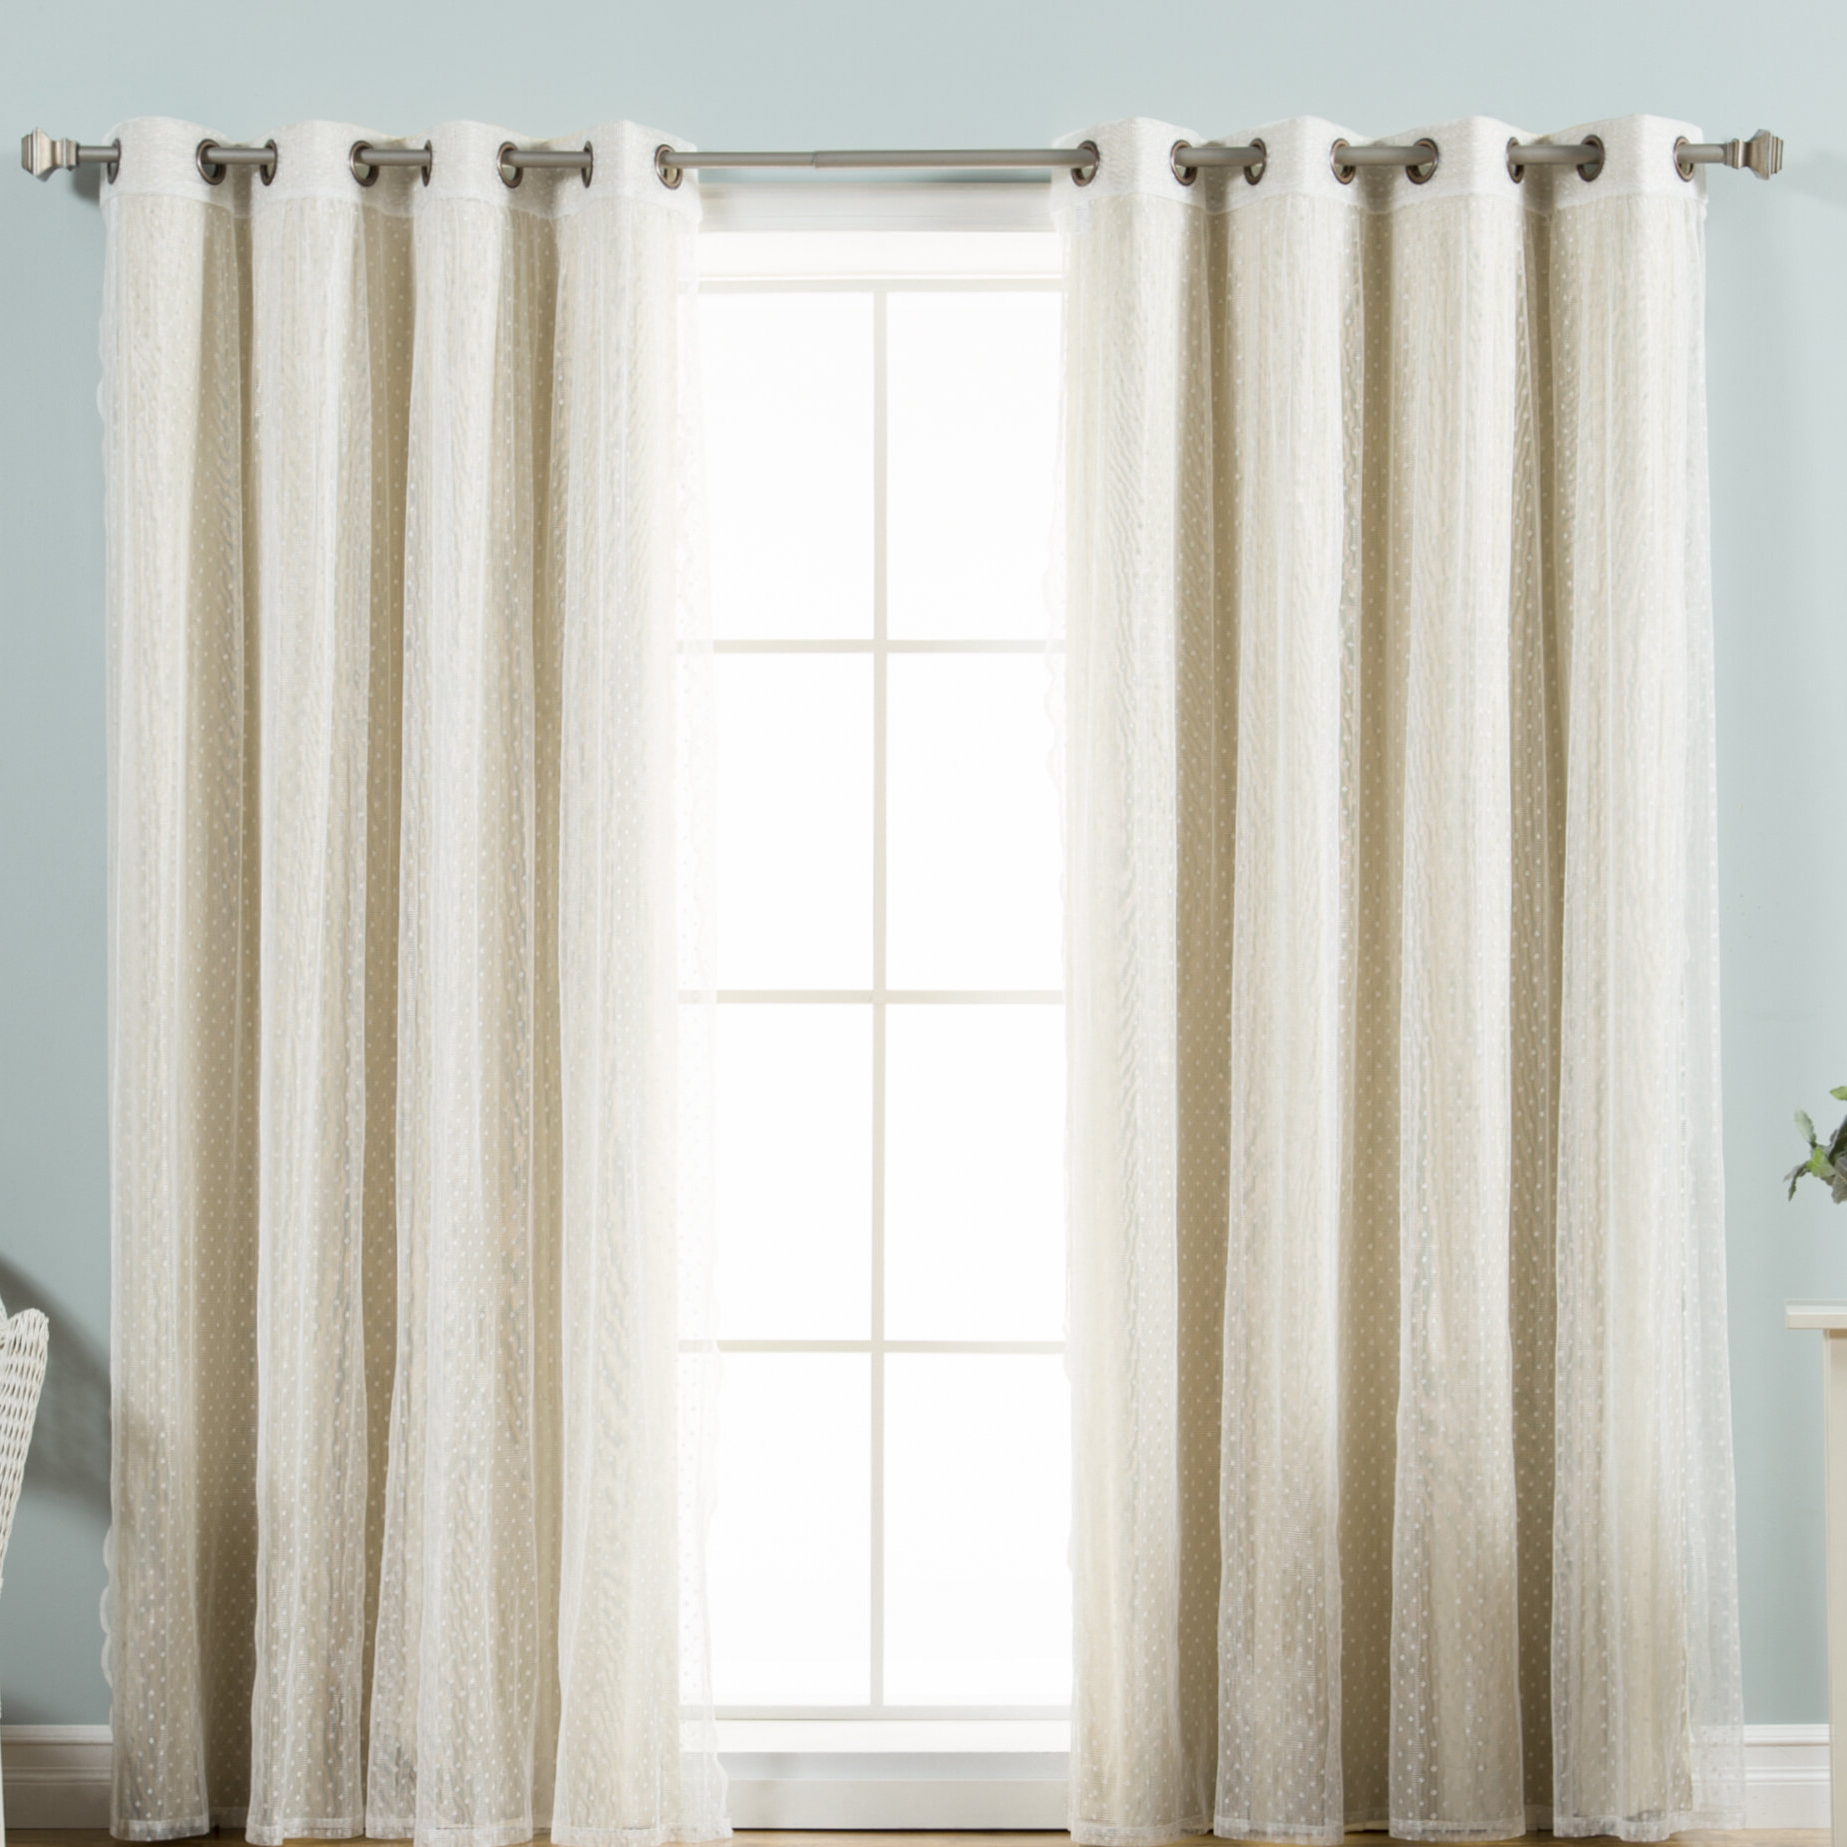 Trendy Mix & Match Blackout Tulle Lace Bronze Grommet Curtain Panel Sets Throughout Tulle Lace Polka Dots Blackout Thermal Grommet Curtain Panels (View 12 of 20)